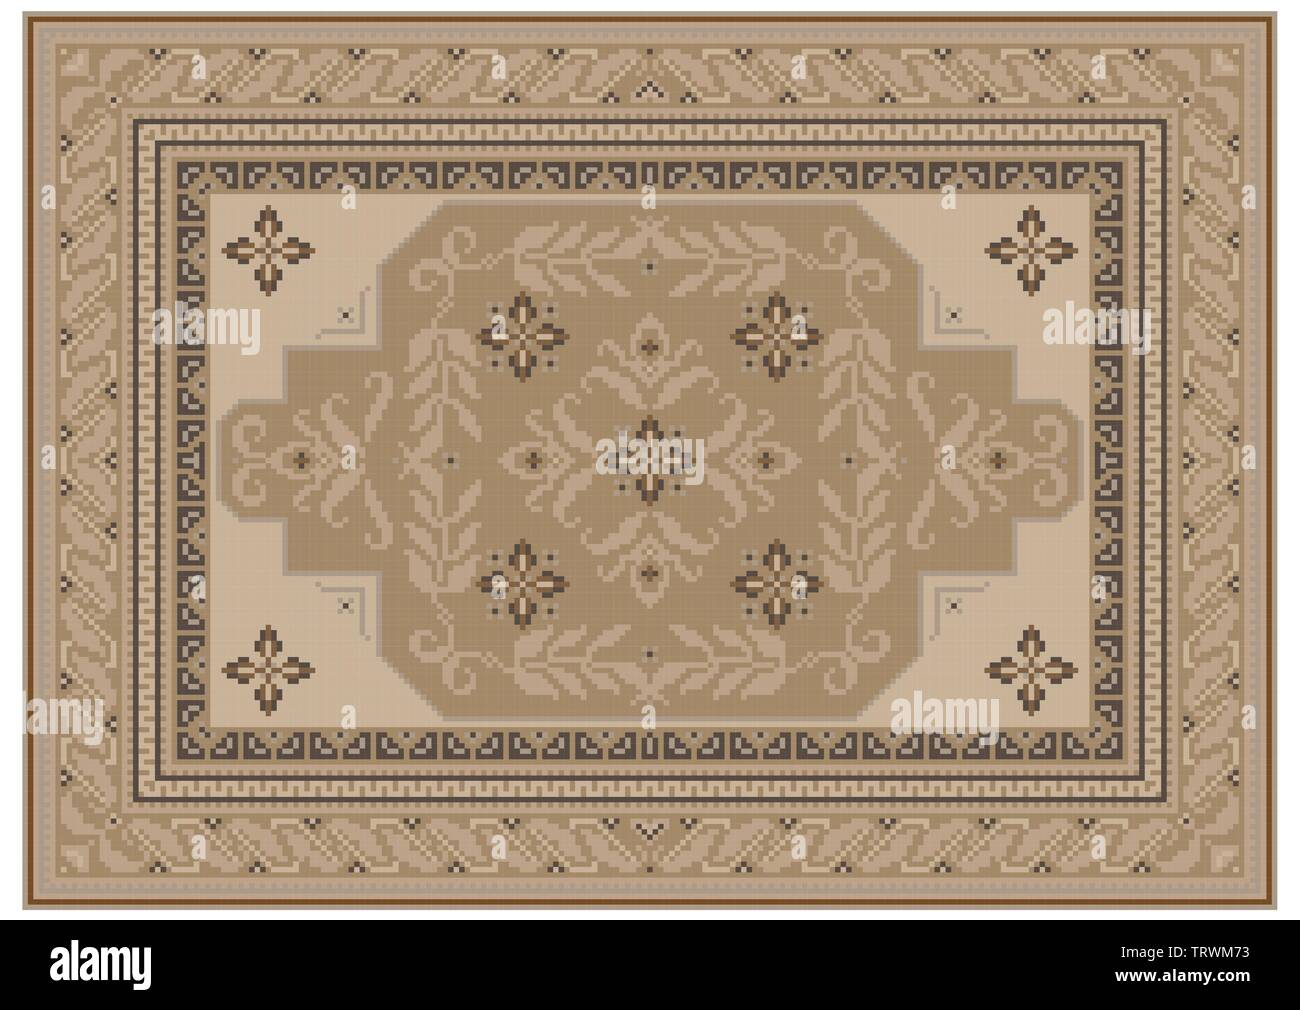 Luxurious carpet design with ethnic ornament of beige shades and a floral pattern in light brown shades in the center - Stock Image